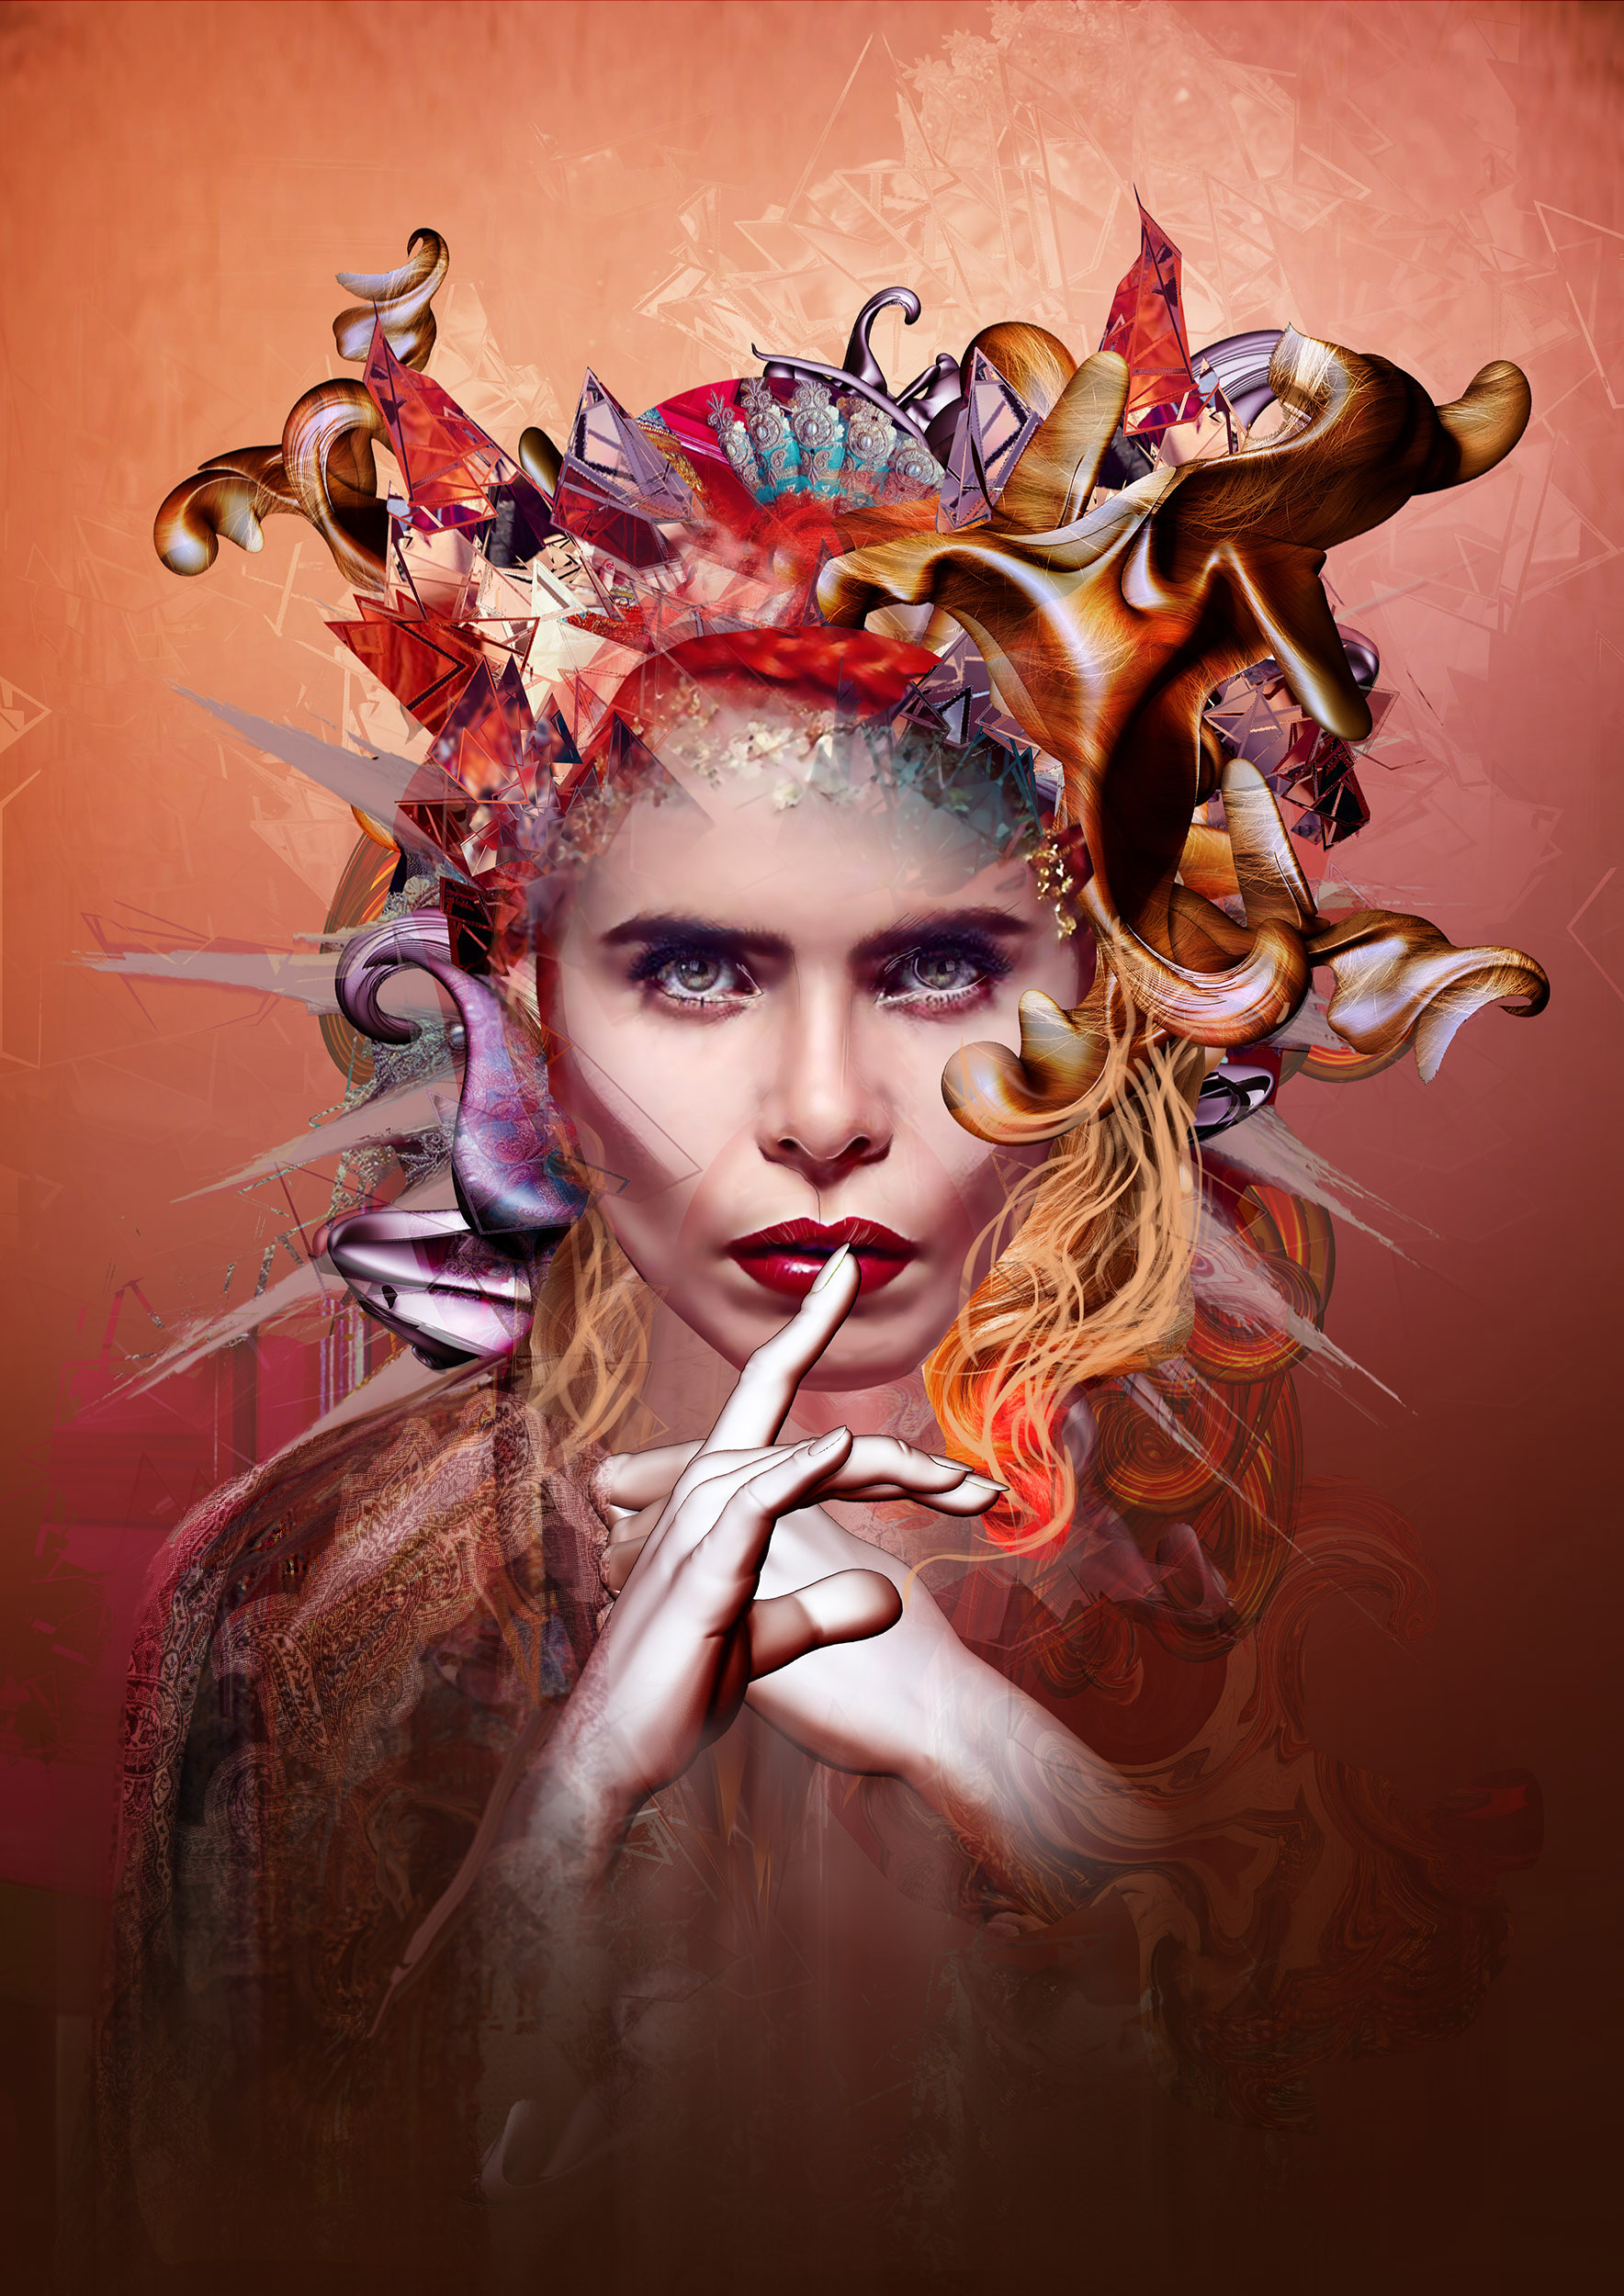 Talented Limerick photographer and digital artist Ken Coleman has seen his design selected in a competition to create artwork for musician Paloma Faith